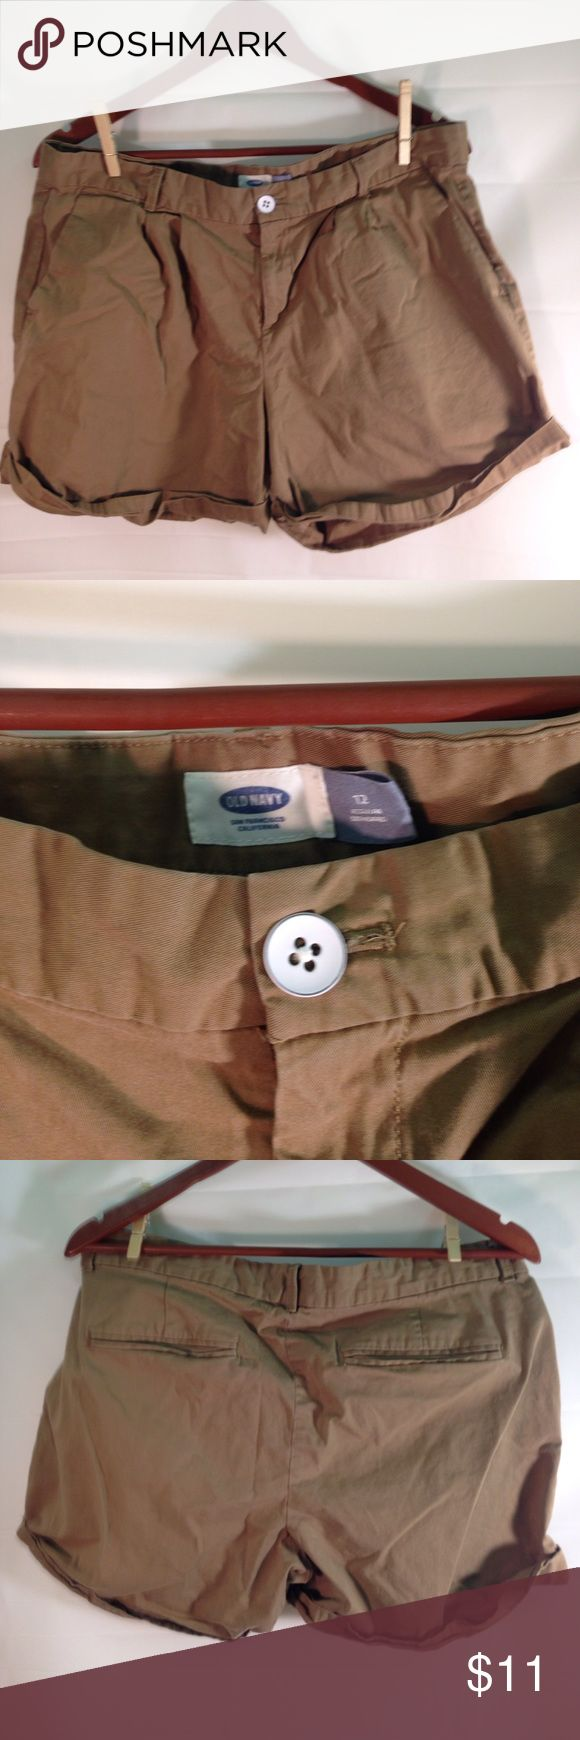 Old Navy Women's Khaki Shorts Size 12 See pictures for condition, thank you! Old Navy Shorts